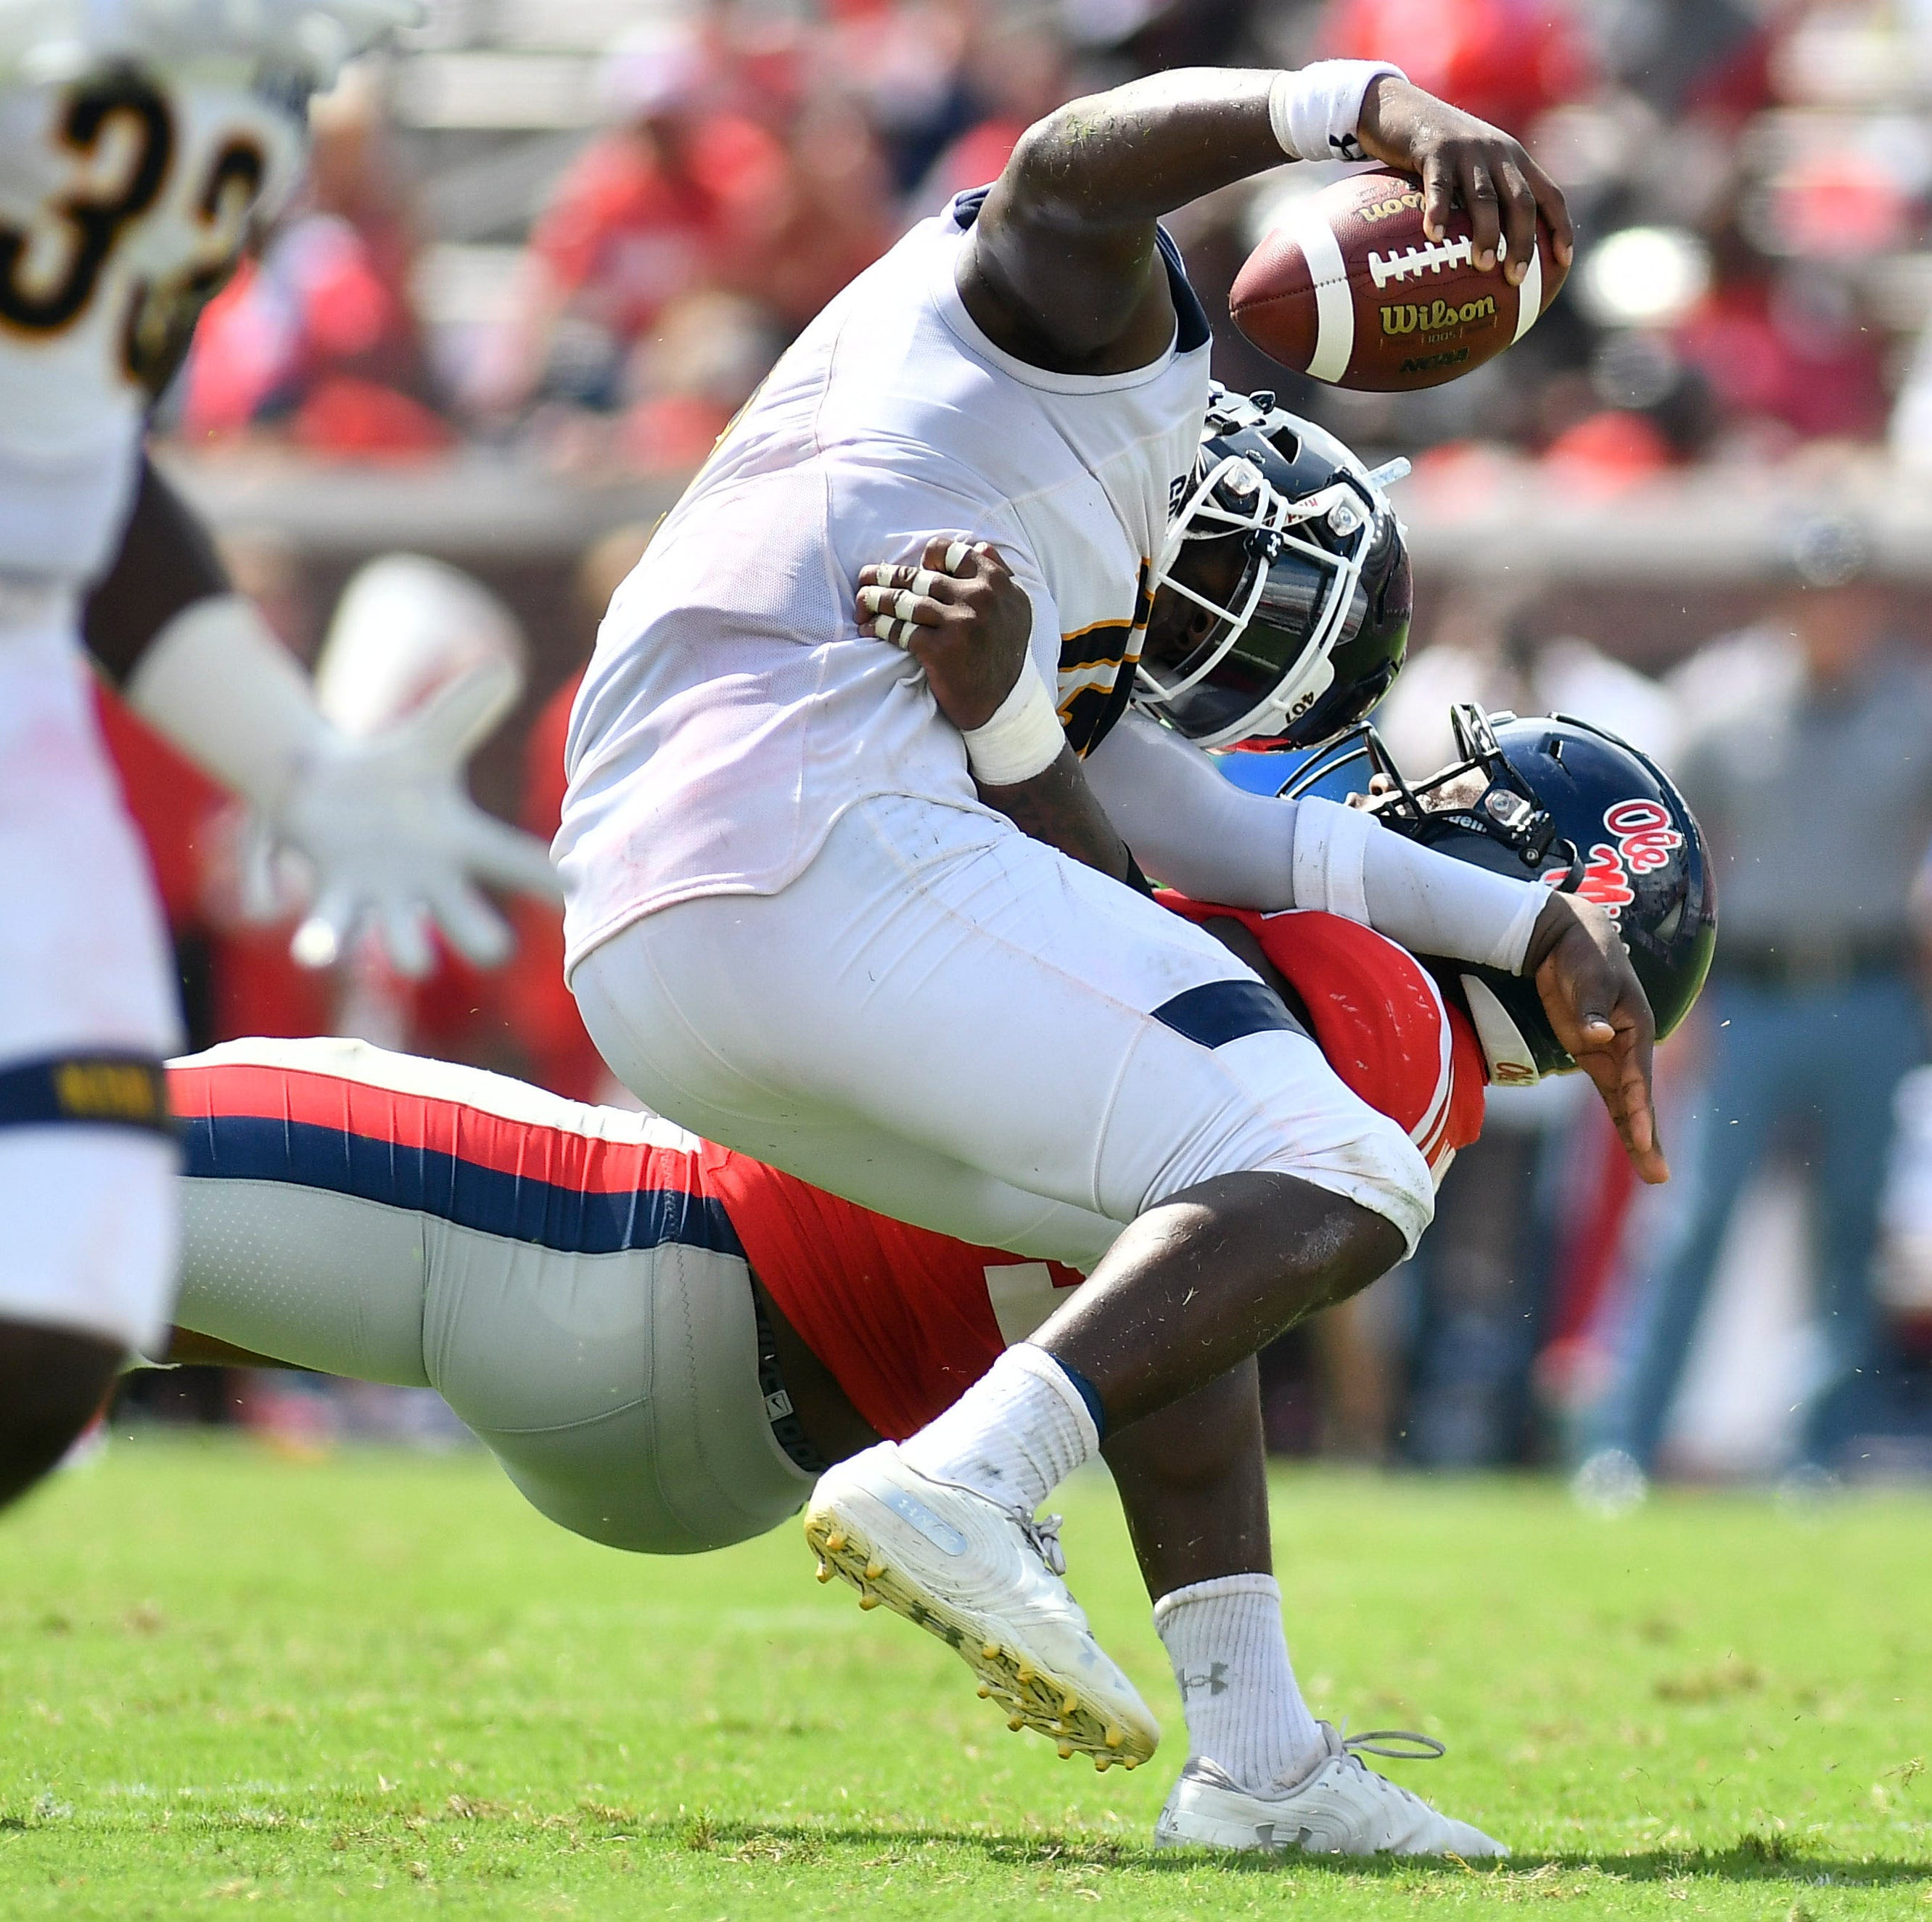 Ole Miss forced to adjust defensive lineup ... and it works